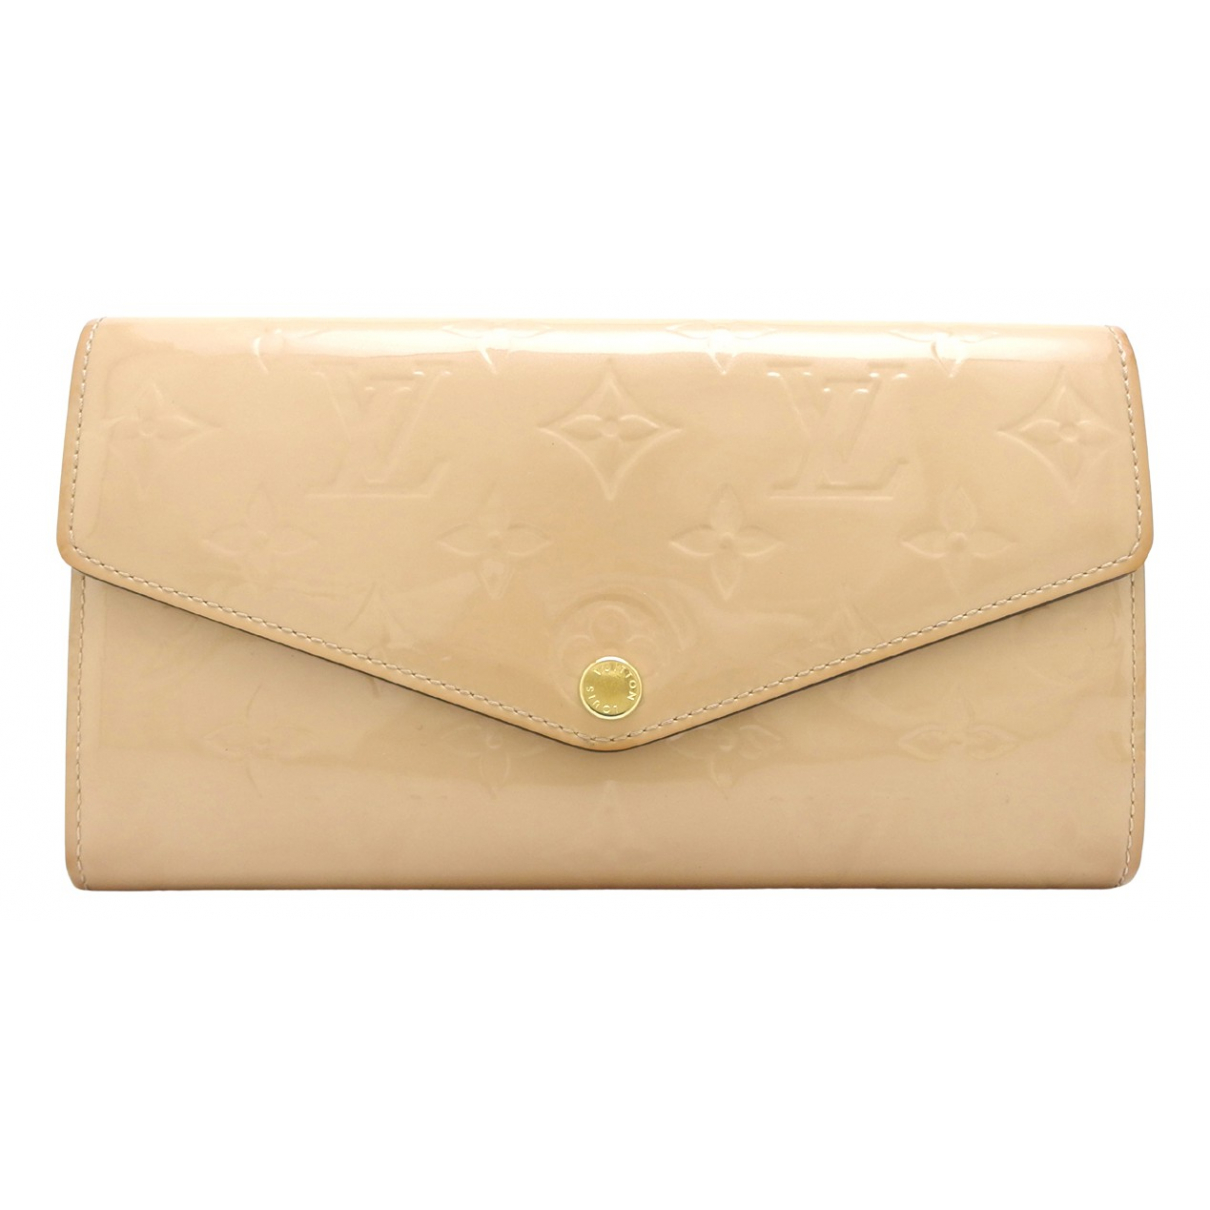 Louis Vuitton Sarah Beige Patent leather wallet for Women N